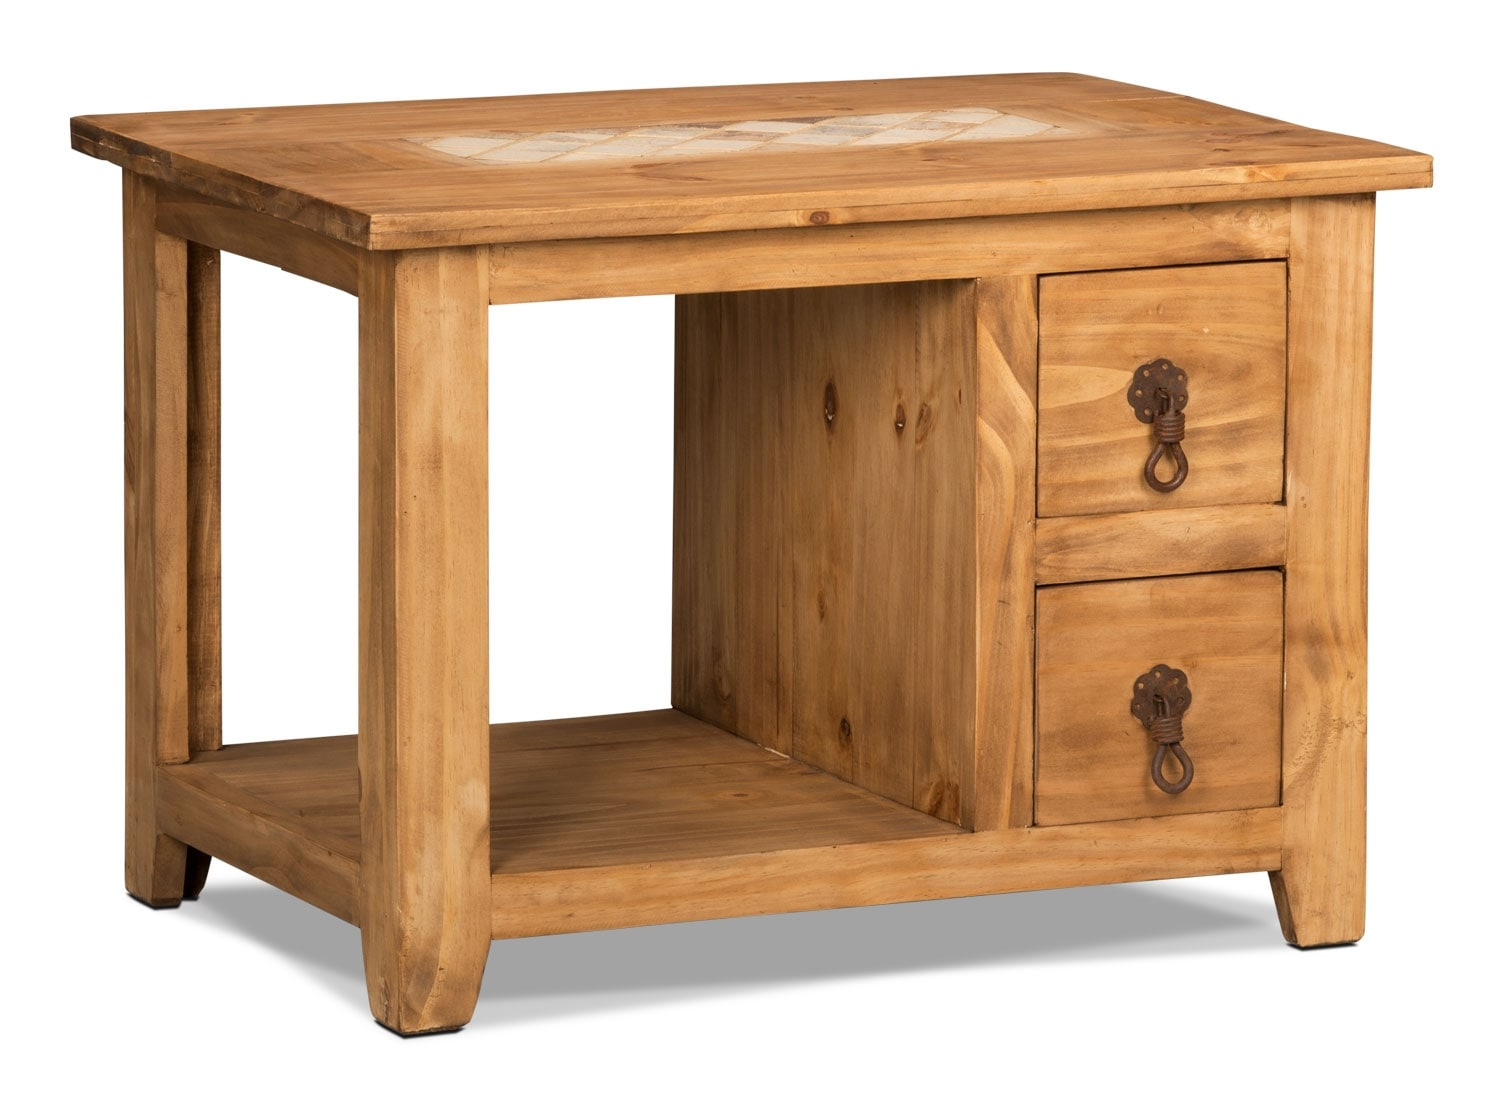 Accent and Occasional Furniture - Santa Fe Rusticos Solid Pine End Table with Marble Inset